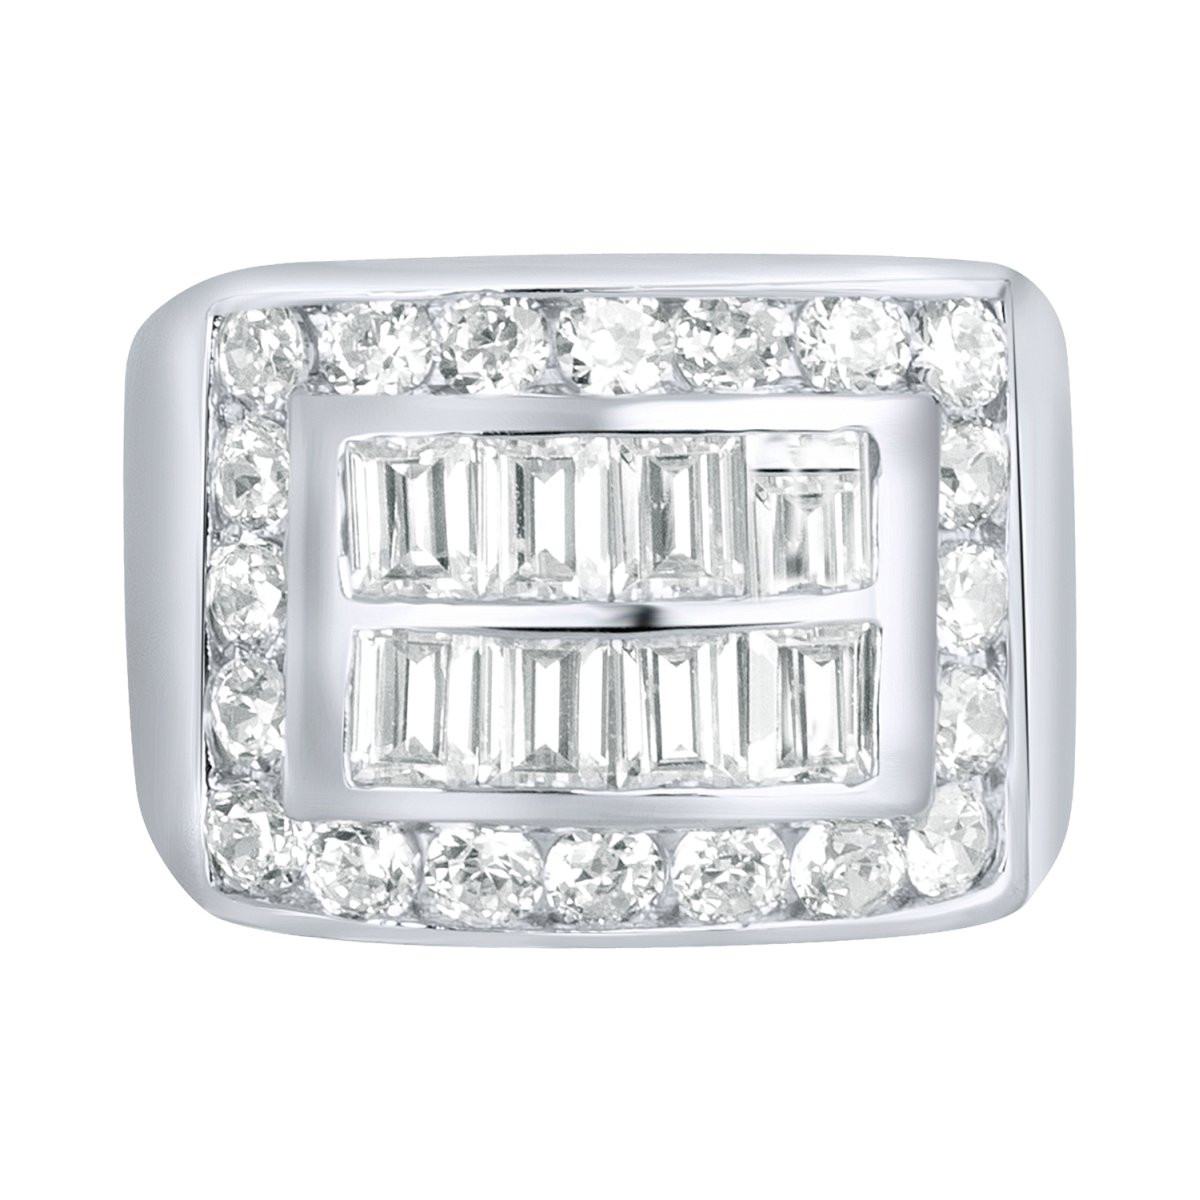 Iced Out Sterling 925er Silber Pave Ring - KING BLING - 10